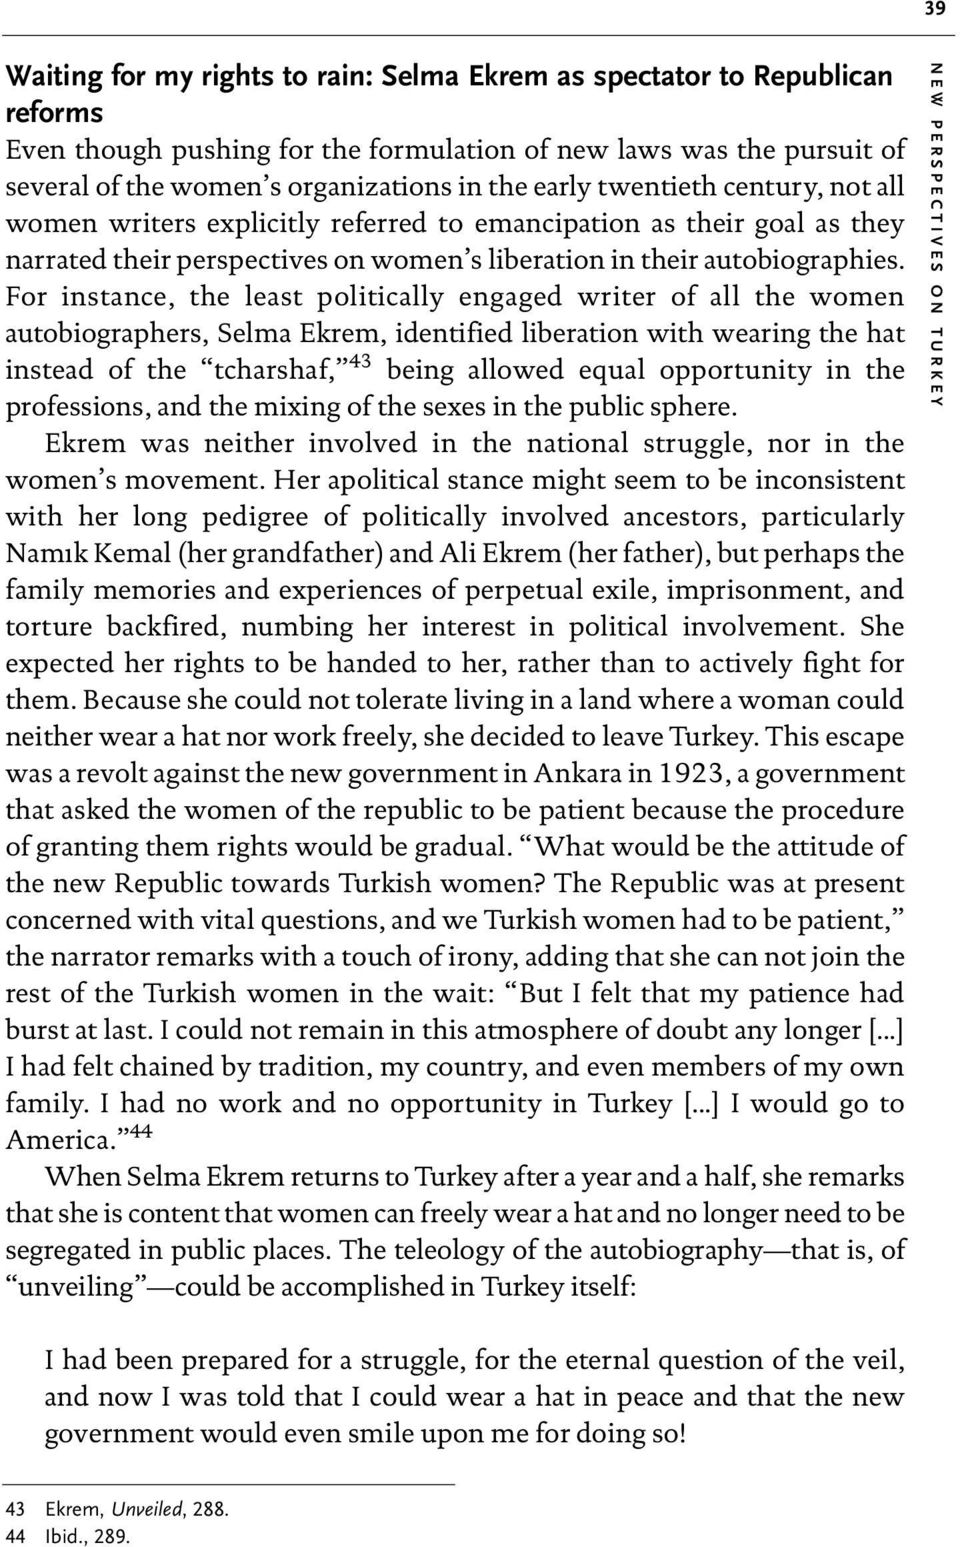 For instance, the least politically engaged writer of all the women autobiographers, Selma Ekrem, identified liberation with wearing the hat instead of the tcharshaf, 43 being allowed equal